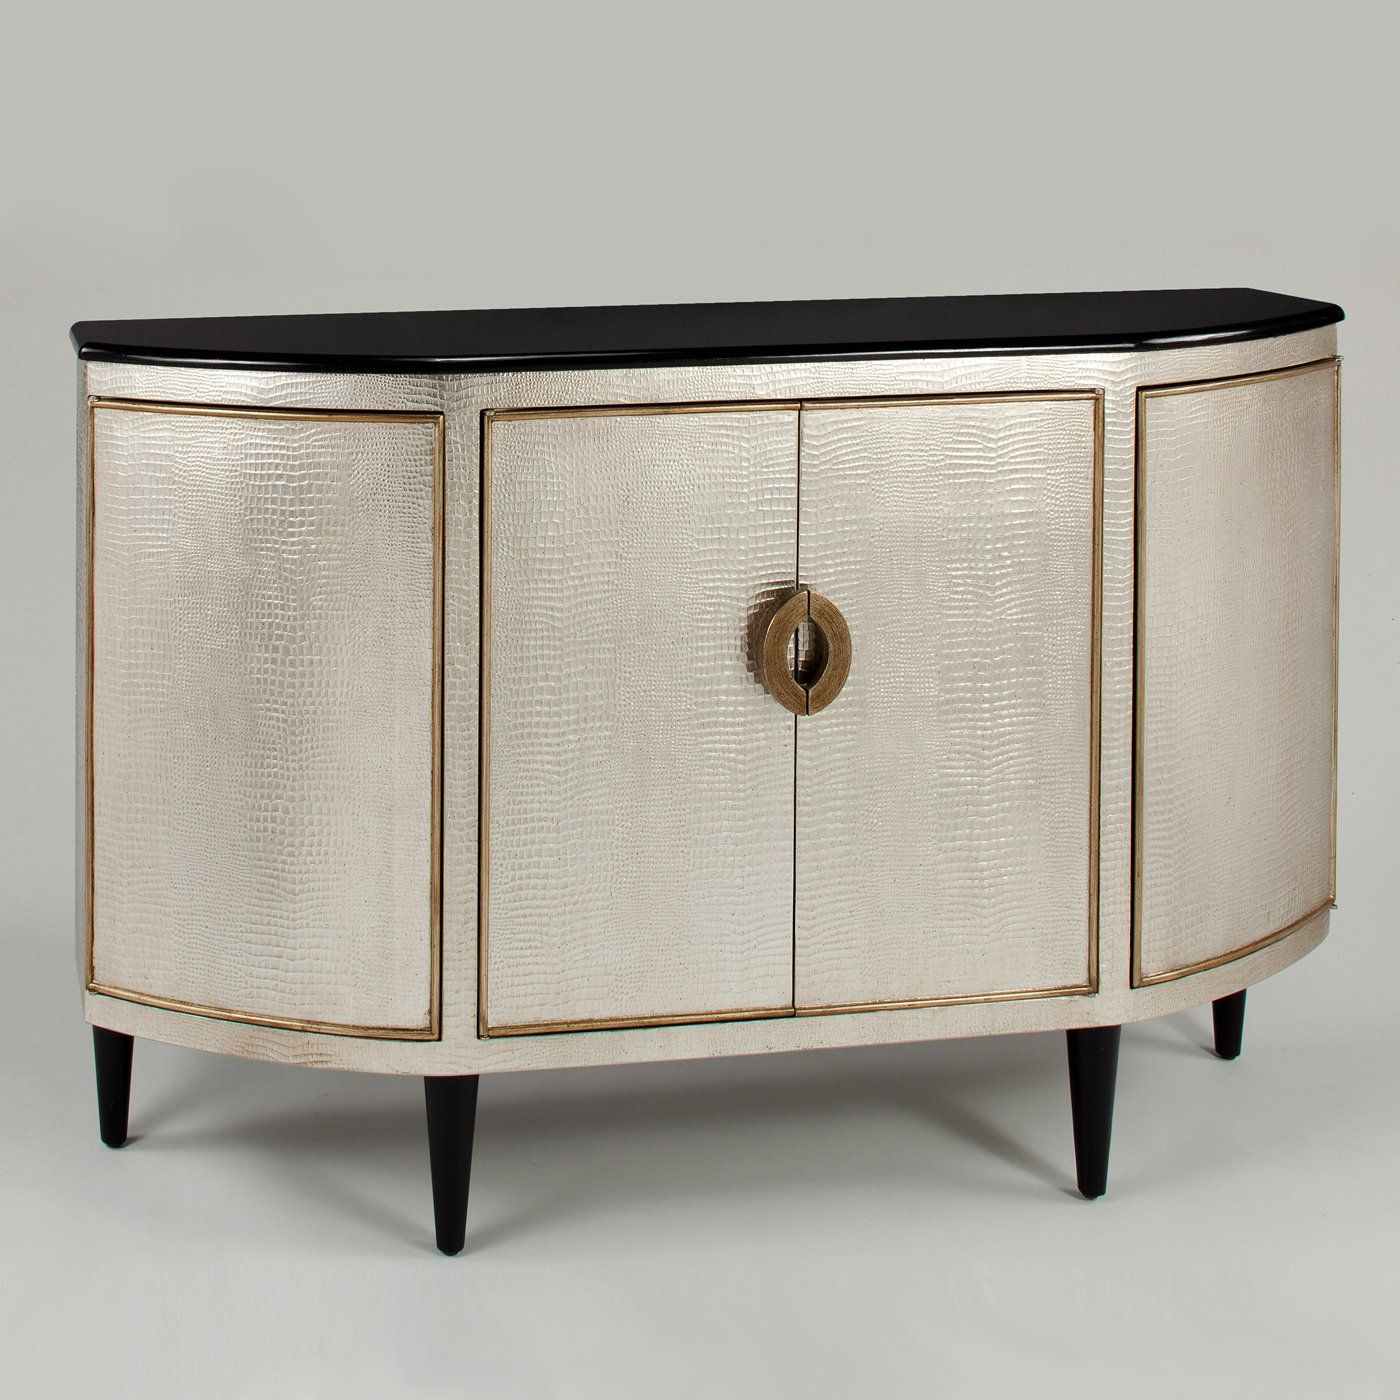 artmax n2911 s buffet home furniture showroom at chattels